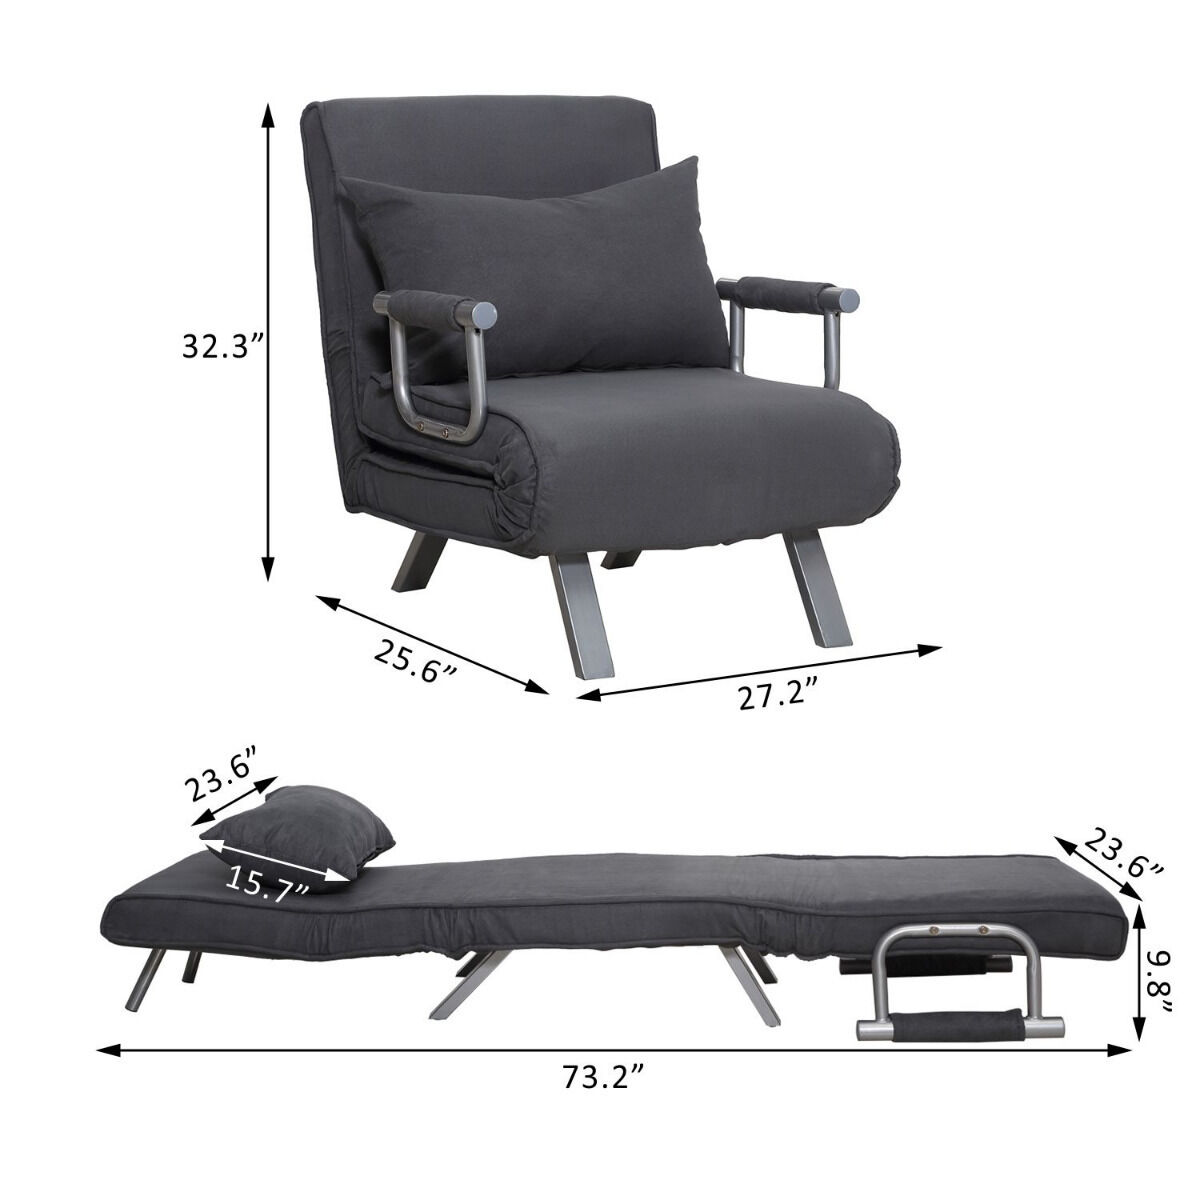 Wonderful Folding Sleeper Flip Chair Convertible Sofa Bed Lounge Couch Pillow 5  Position